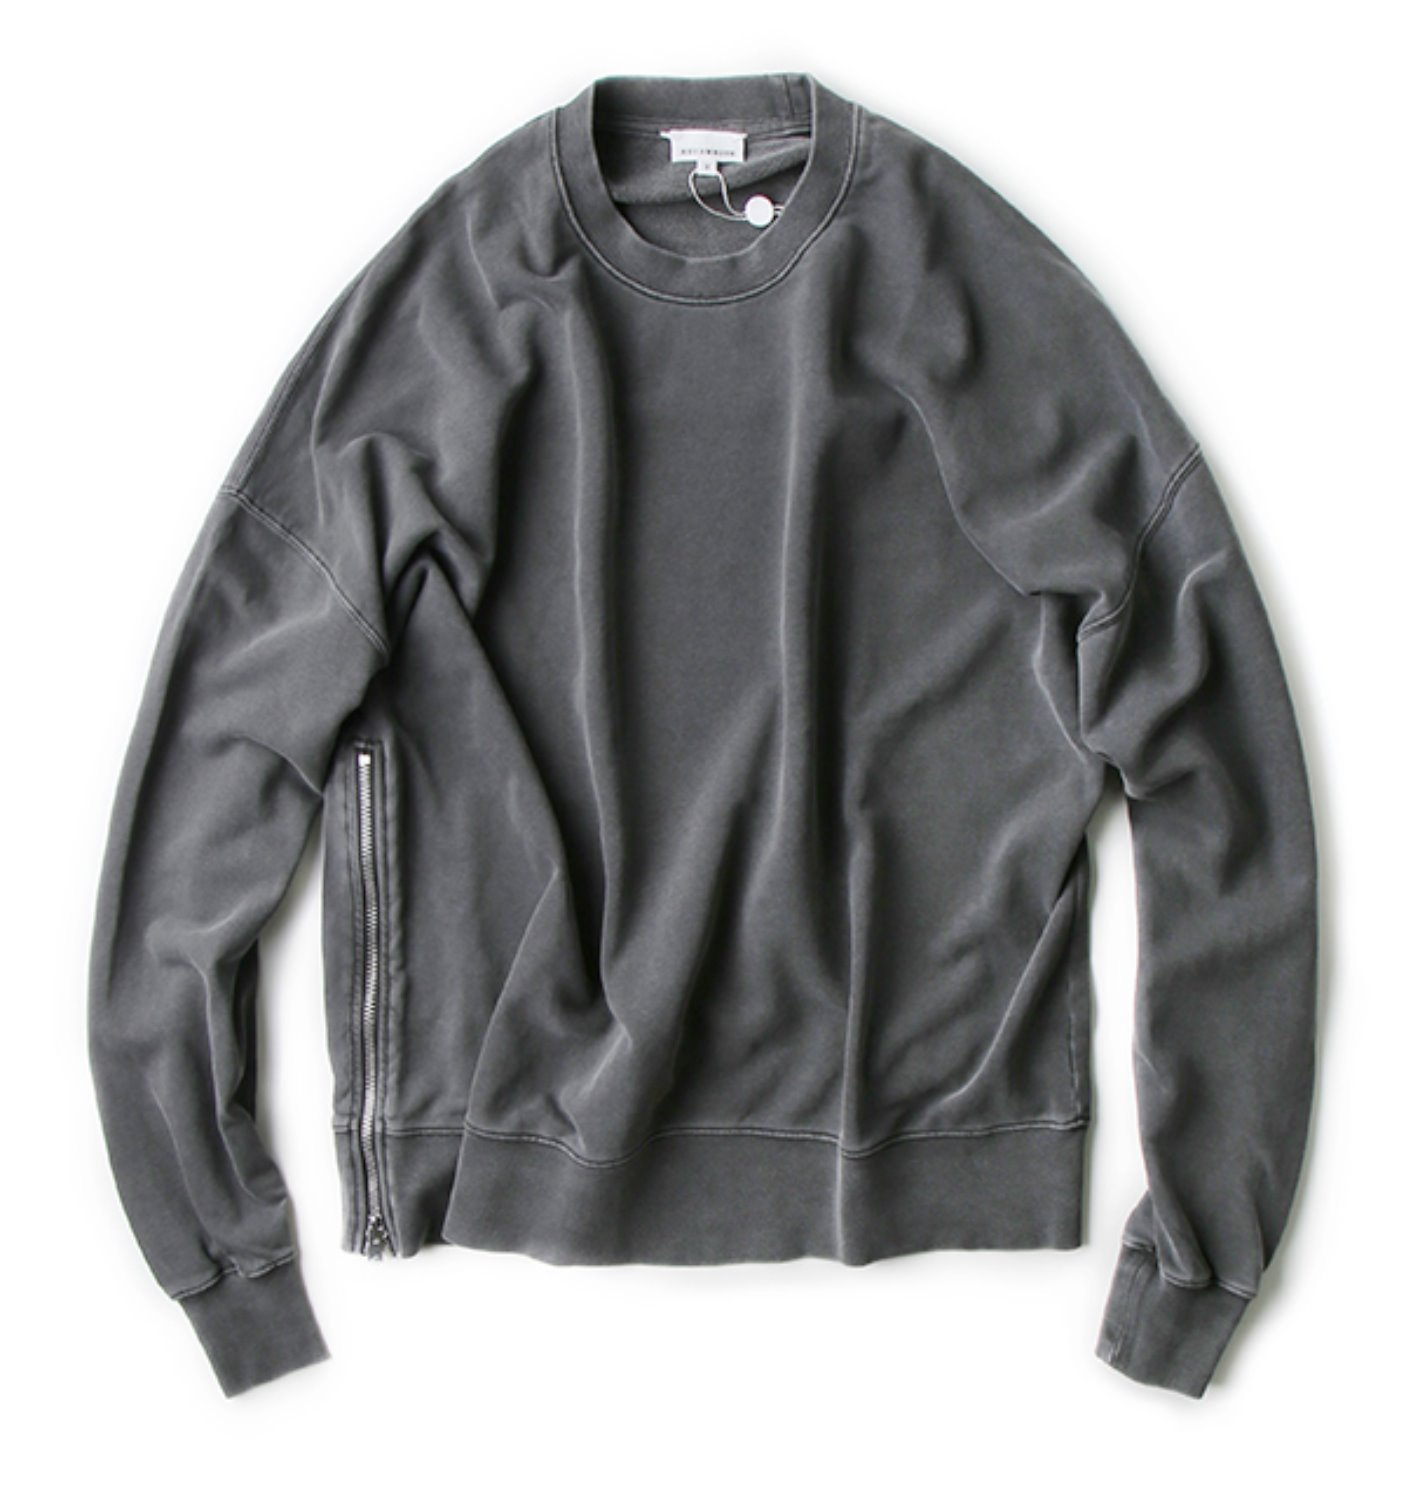 SCULP X AECA WHITE OVERSIZE SWEATSHIRT CHARCOAL(EXCLUSIVE)